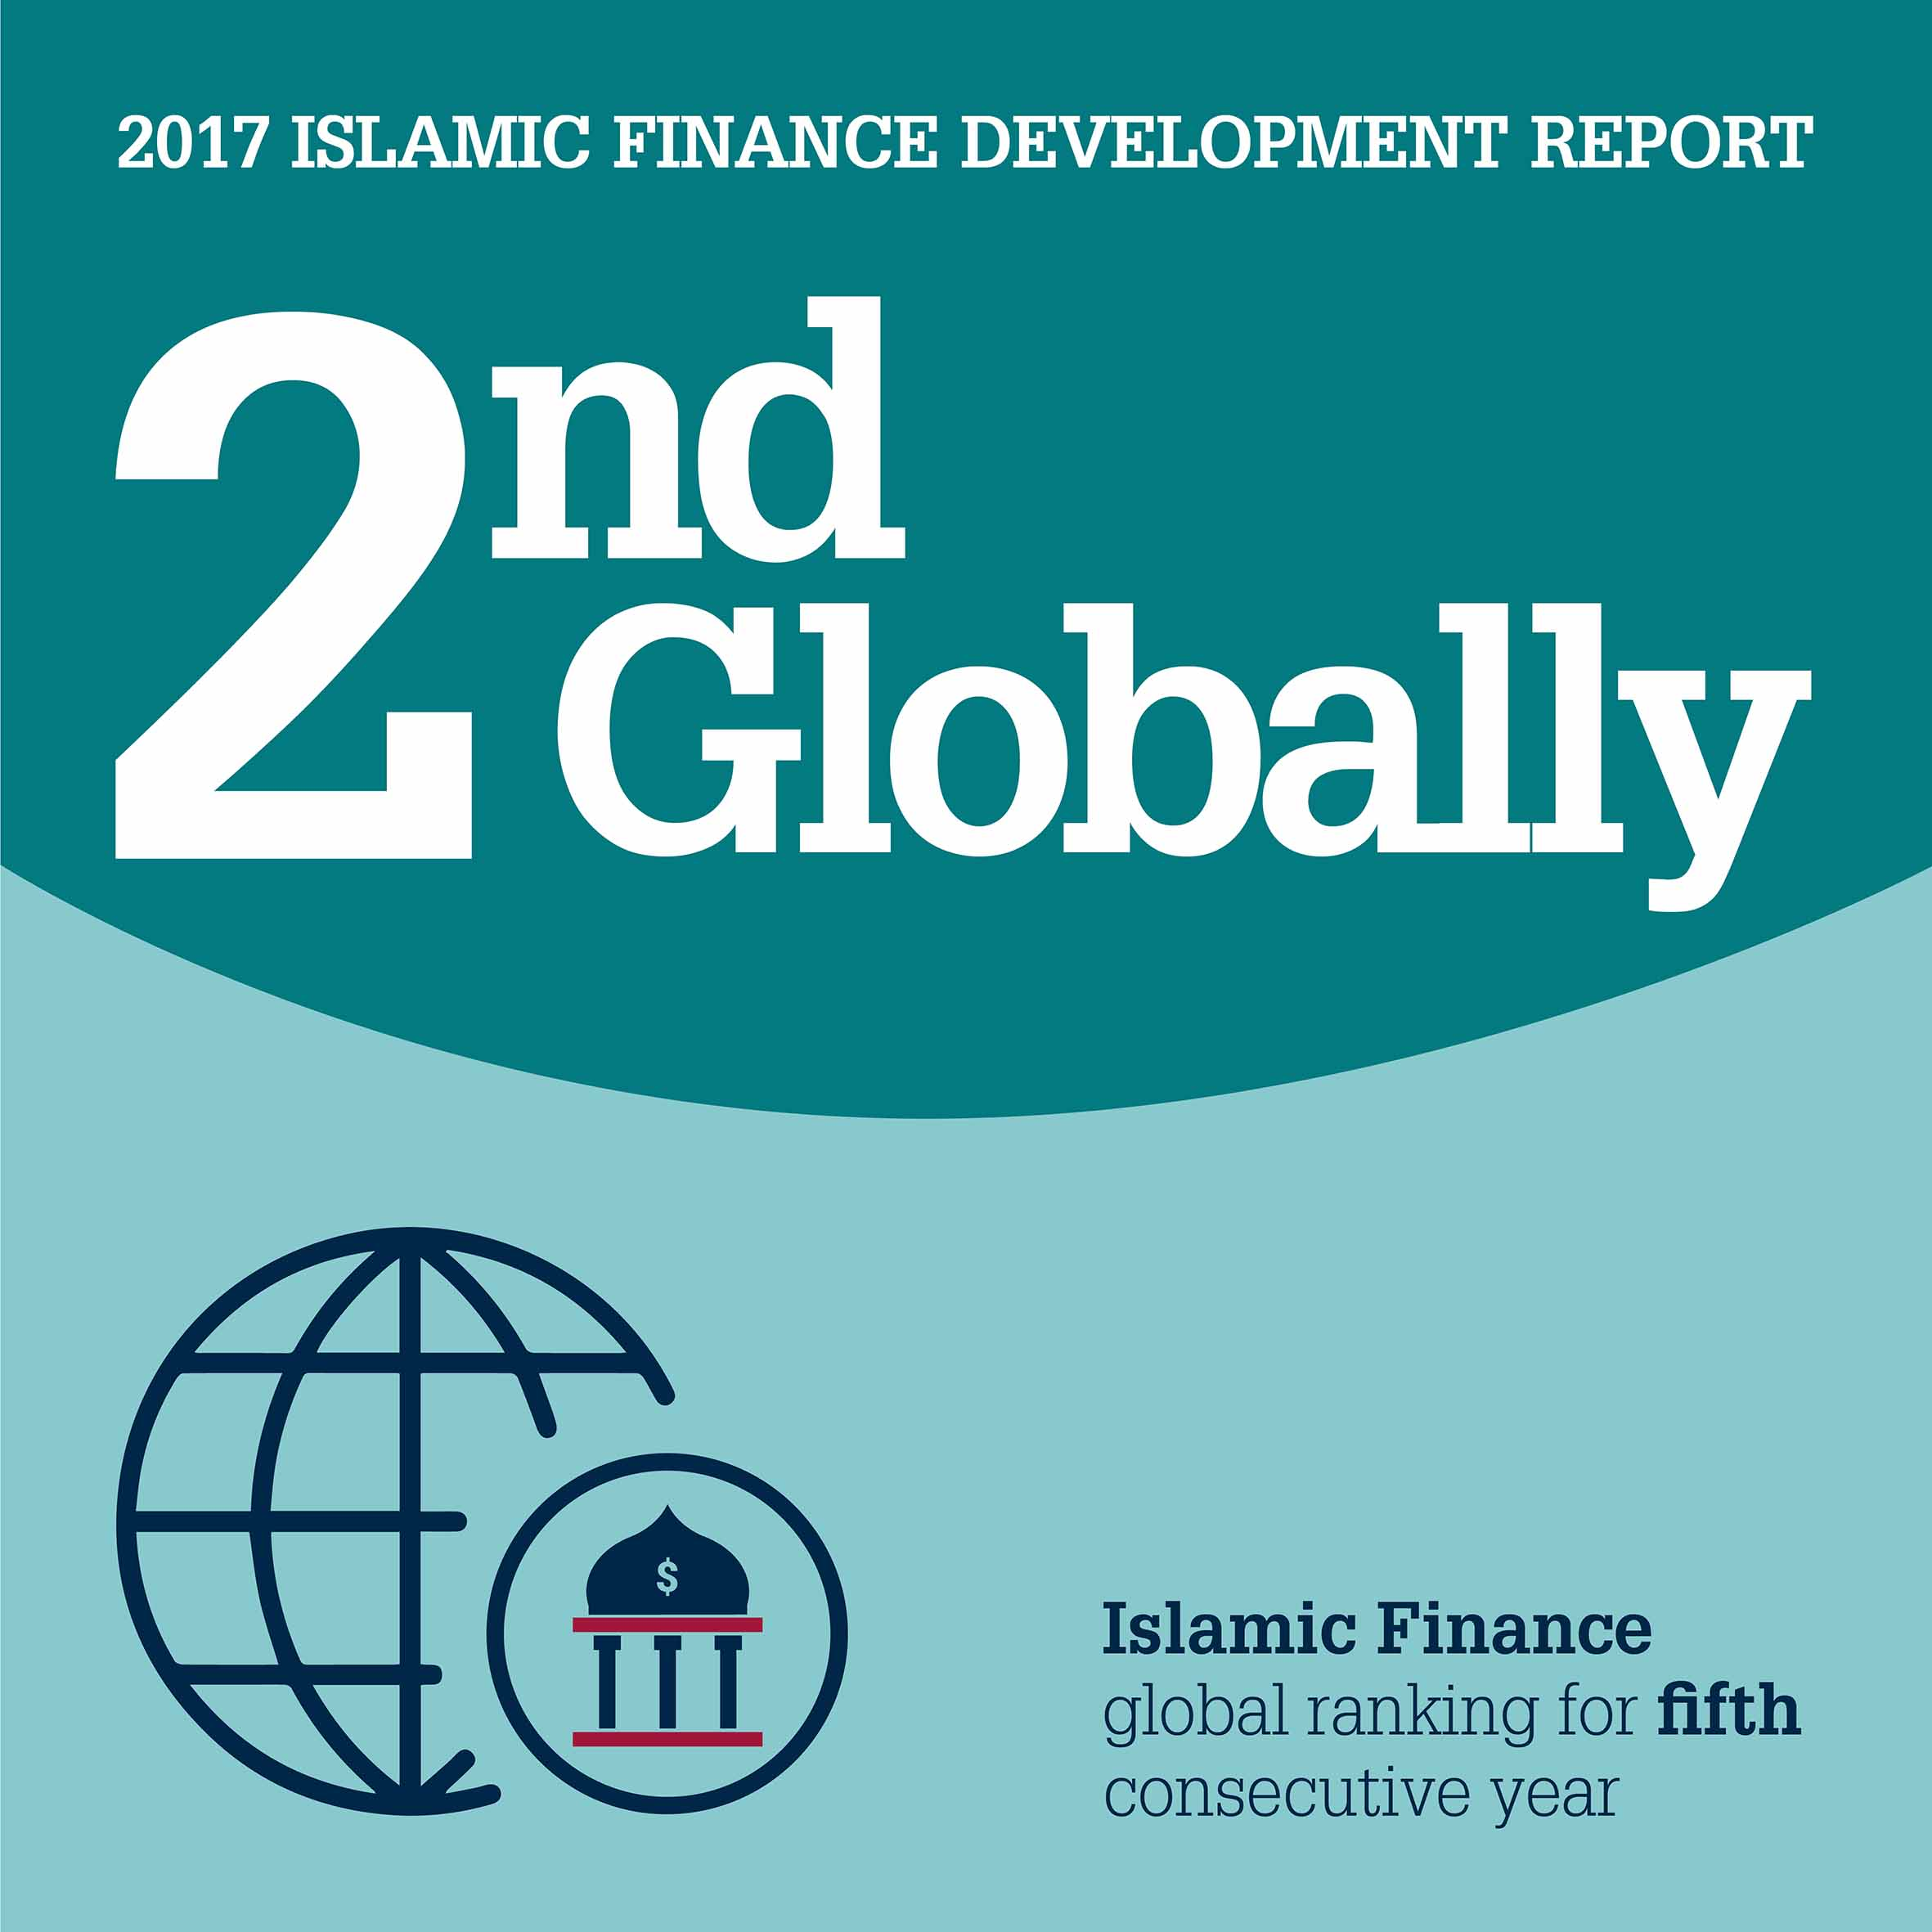 Bahrain Regional Leader in Islamic Finance Development